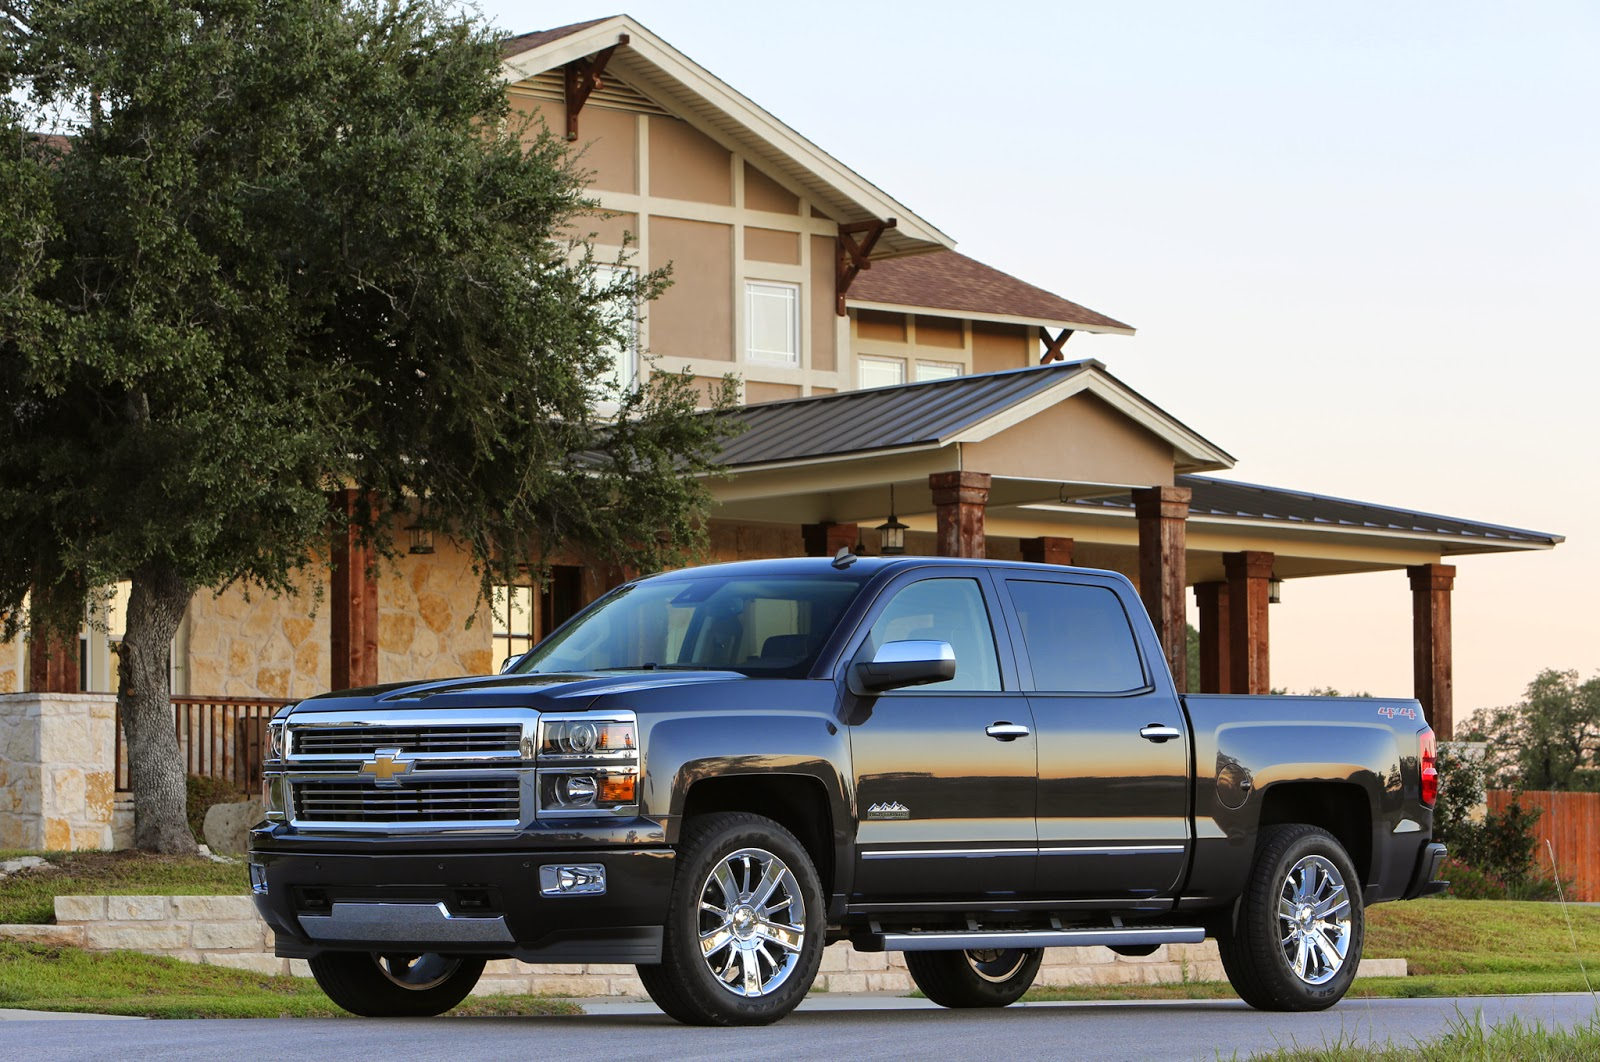 How To Use Chevrolet Collision Alert in the 2014 Silverado